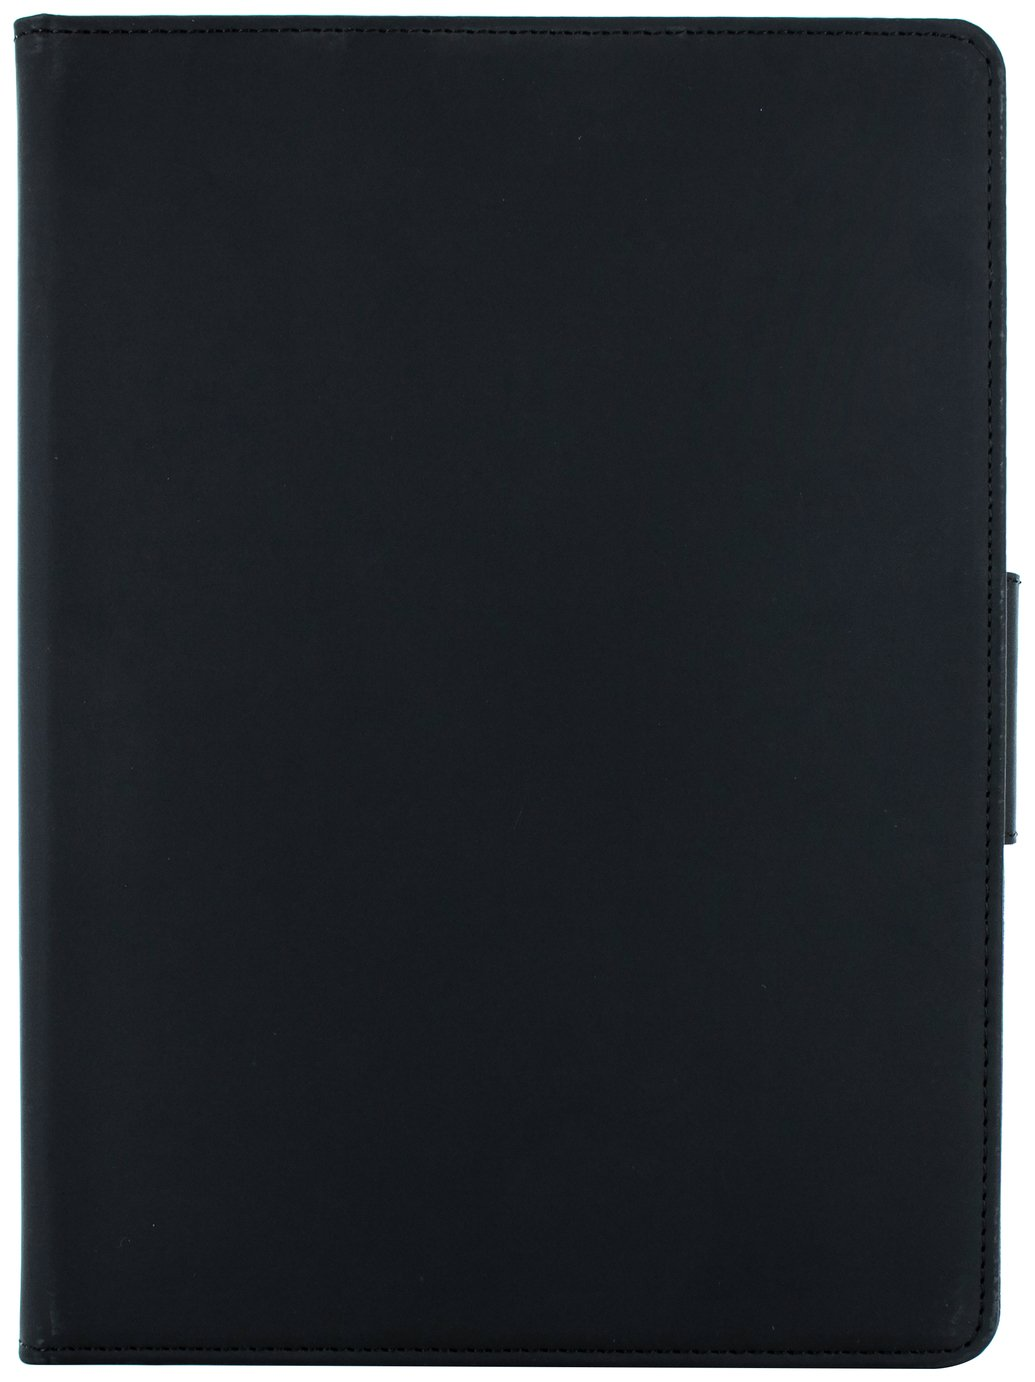 Proporta iPad Pro 12.9 Inch Folio Tablet Case - Black